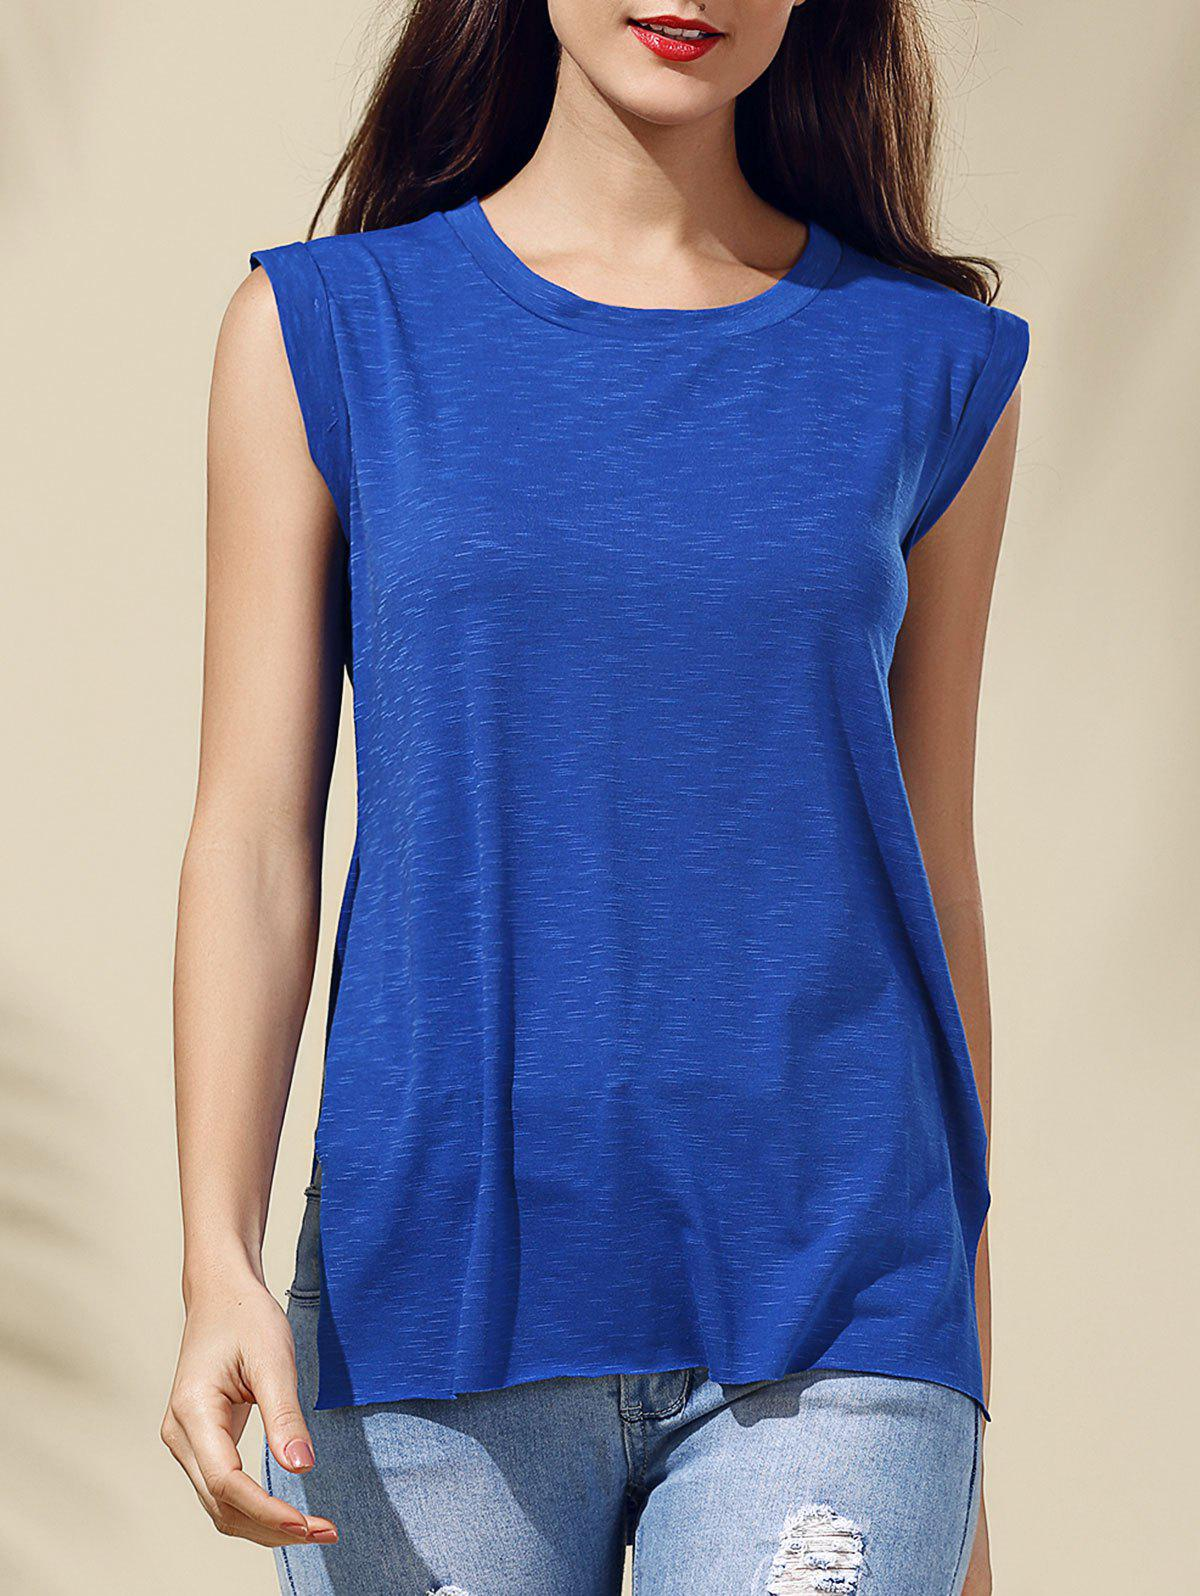 Stylish Sleeveless Blue Furcal T-Shirt For Women - BLUE M